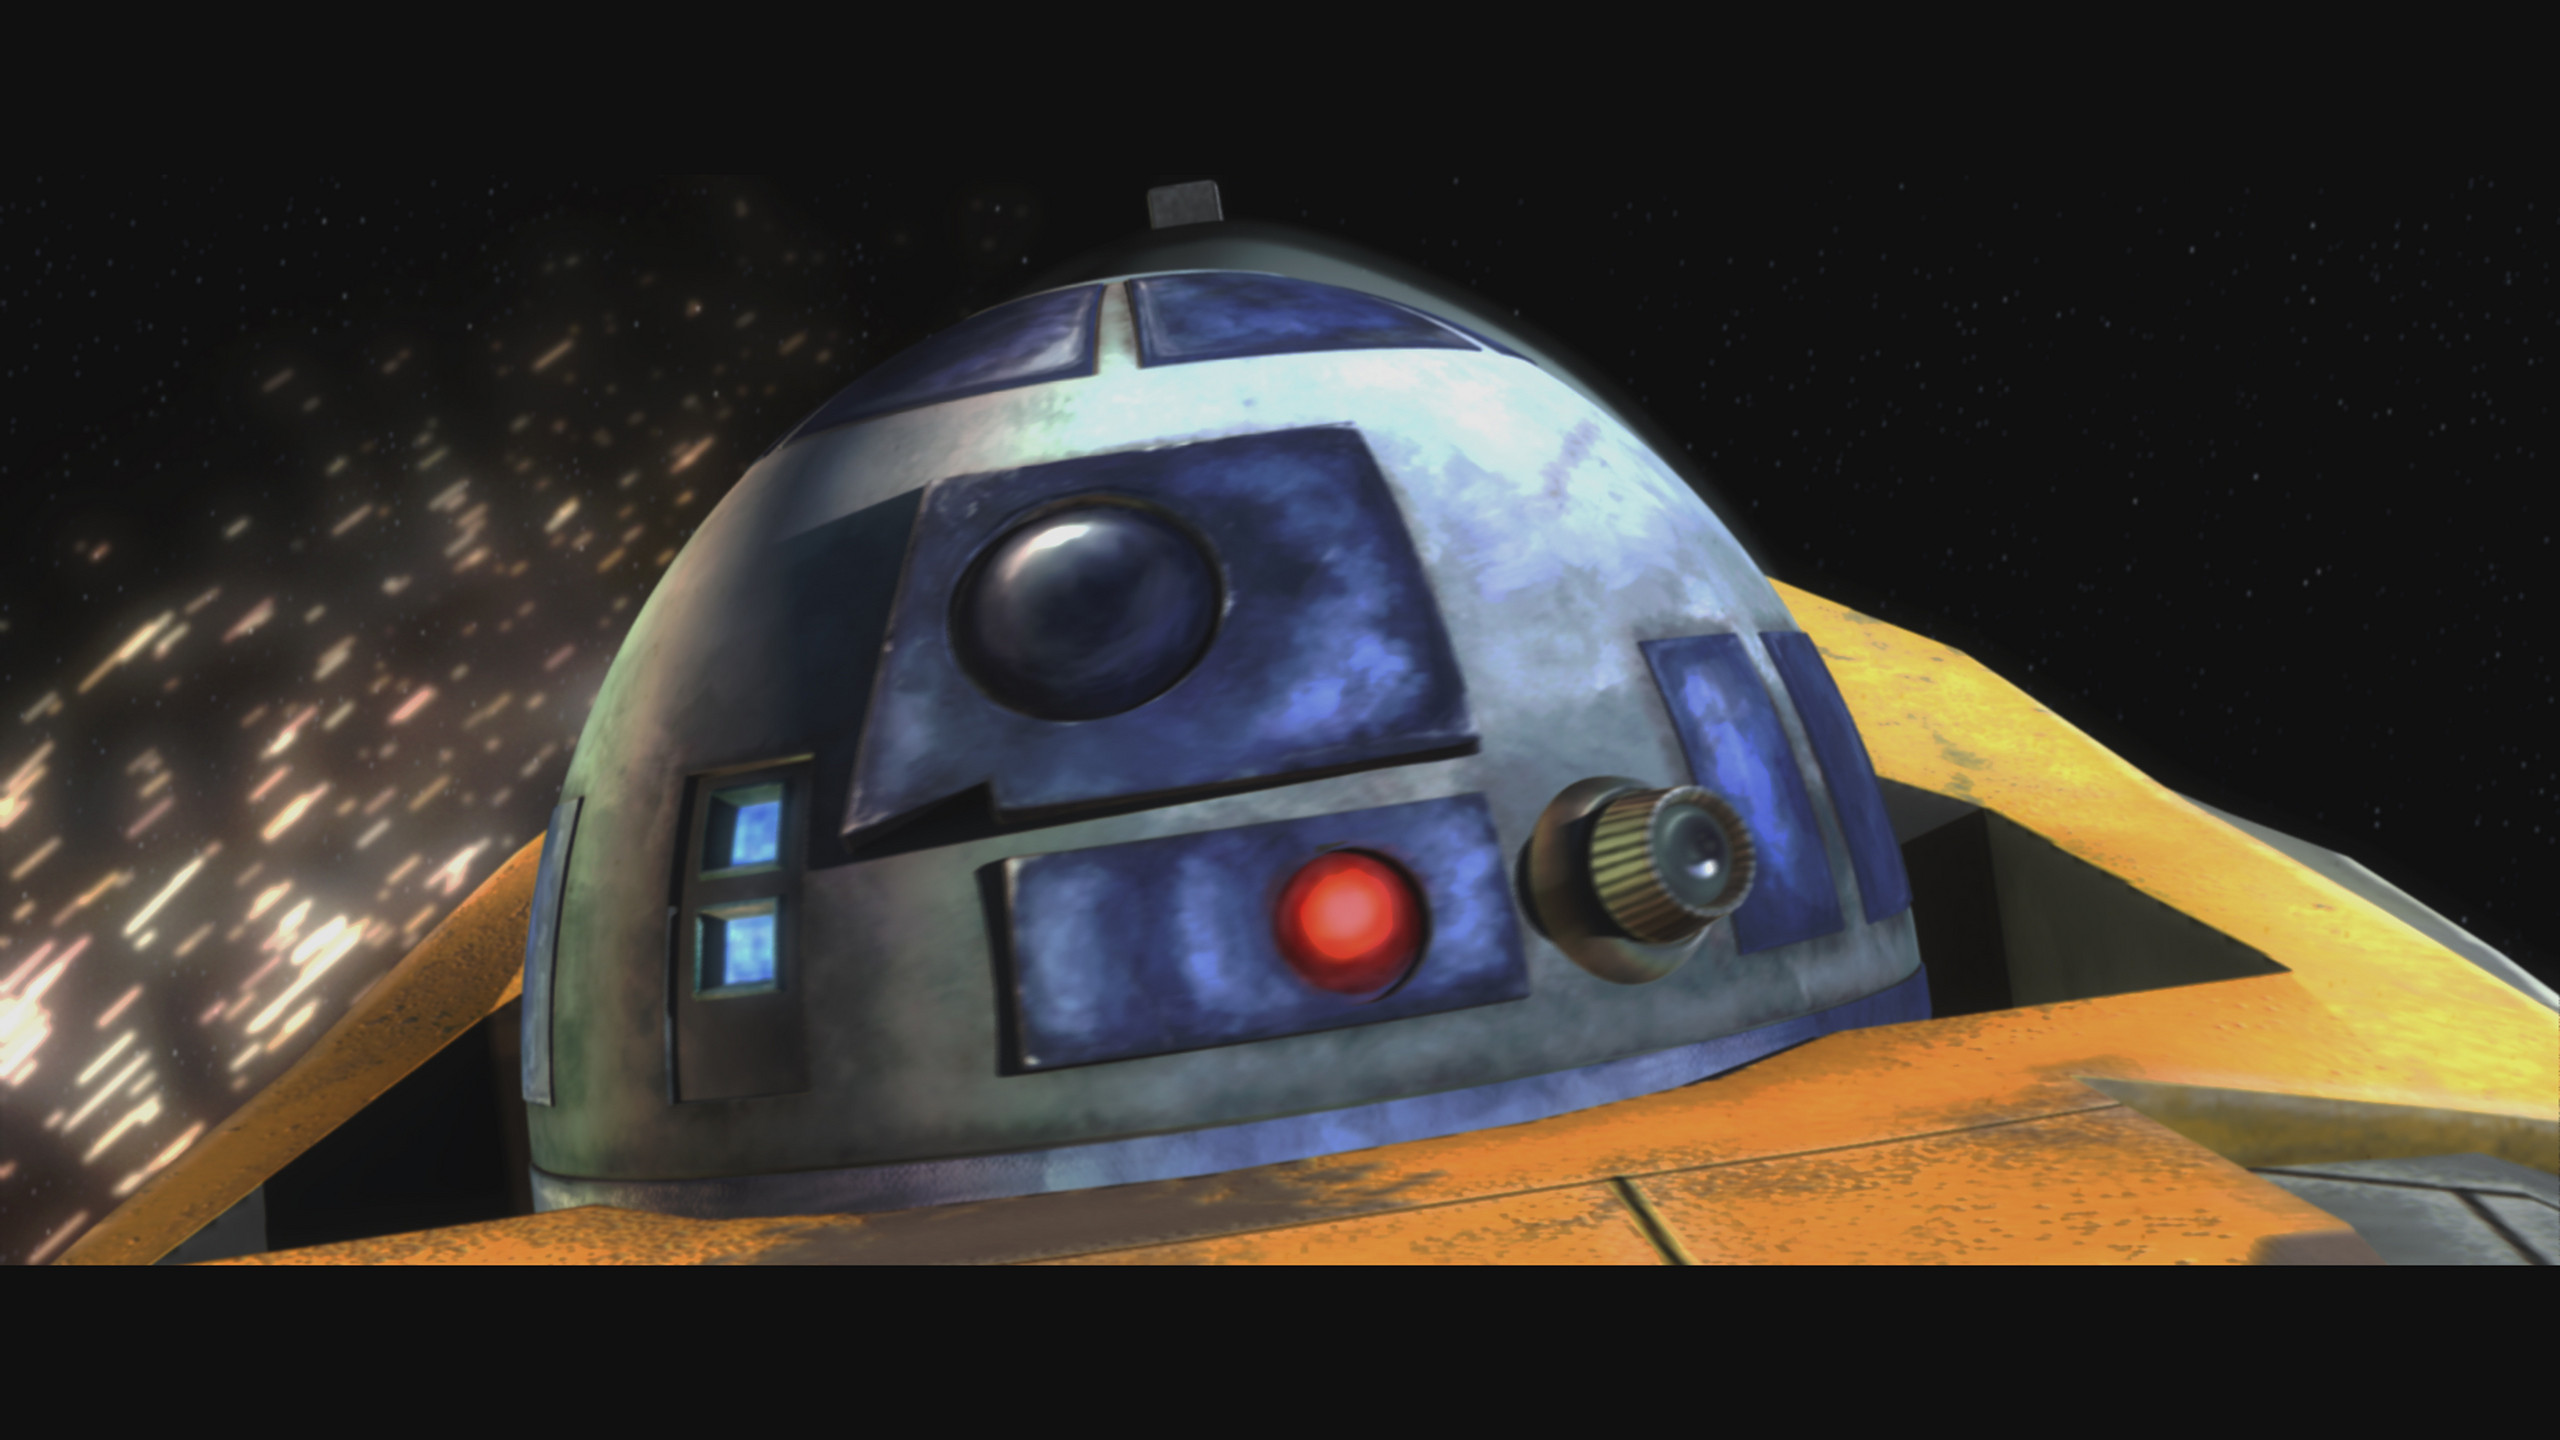 2560x1440 R2-D2 images Clone Wars Artoo HD wallpaper and background photos